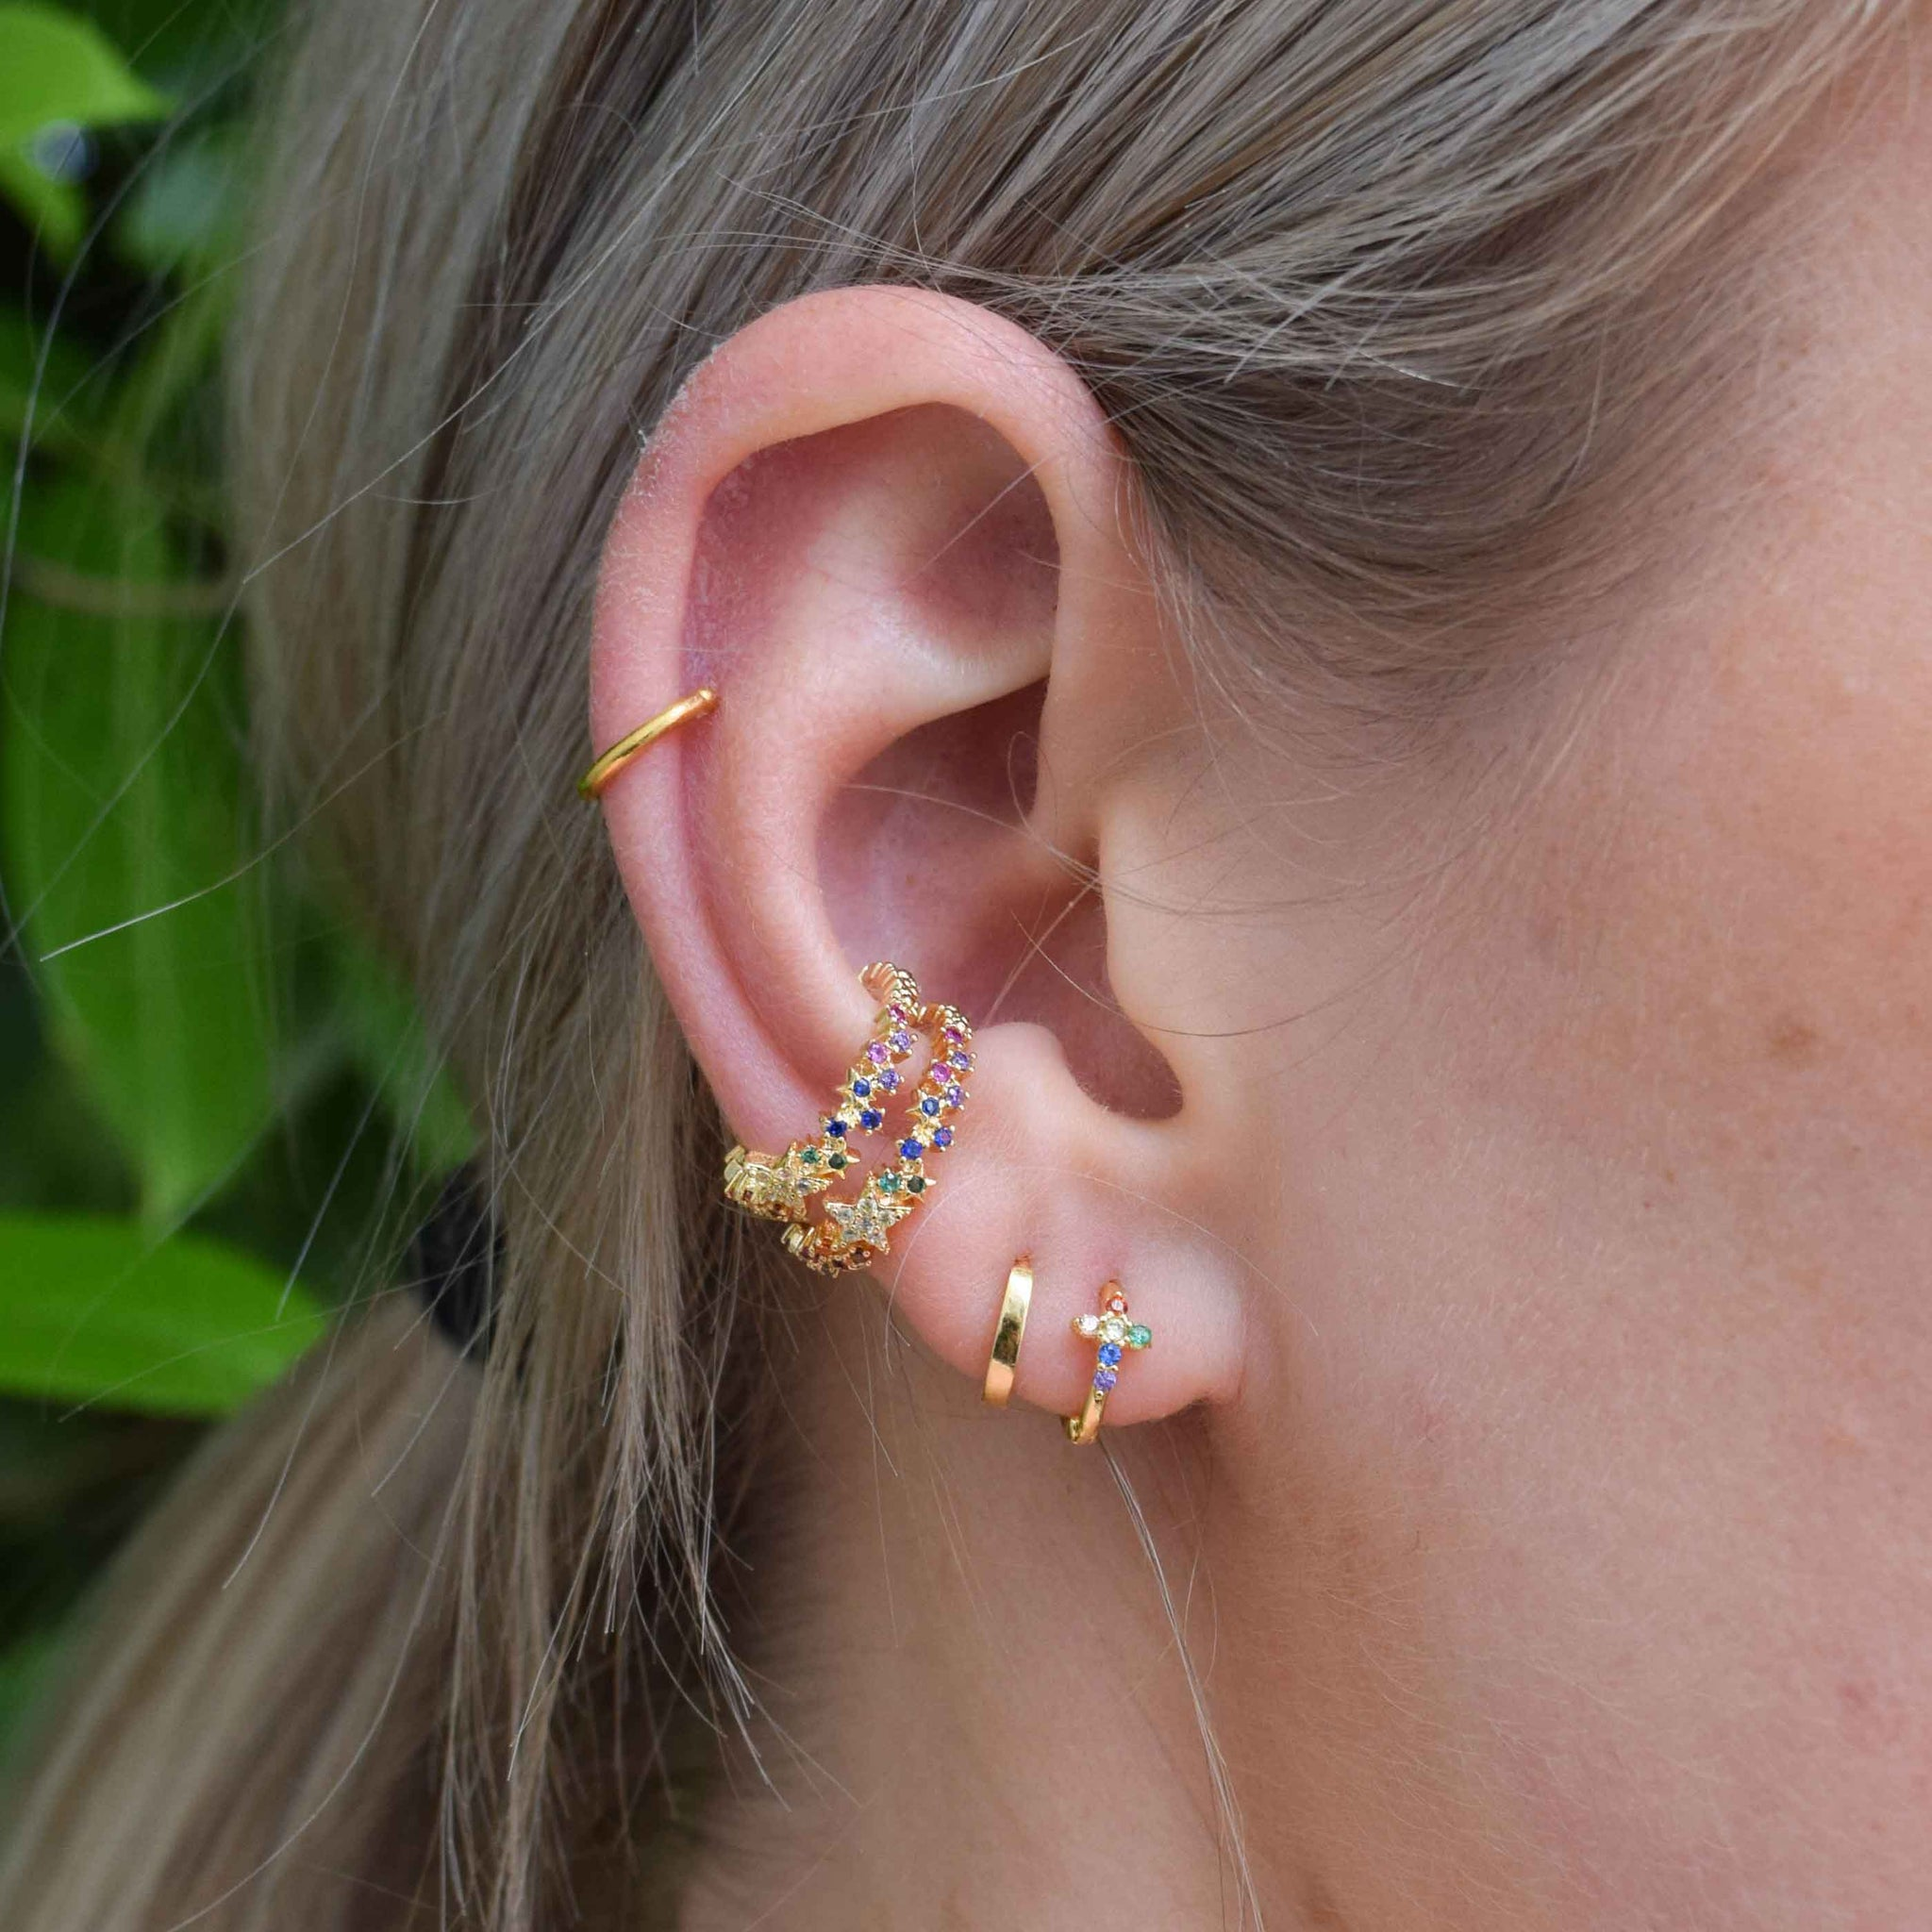 Rainbow Star Ear Cuff in Gold worn with gold huggies